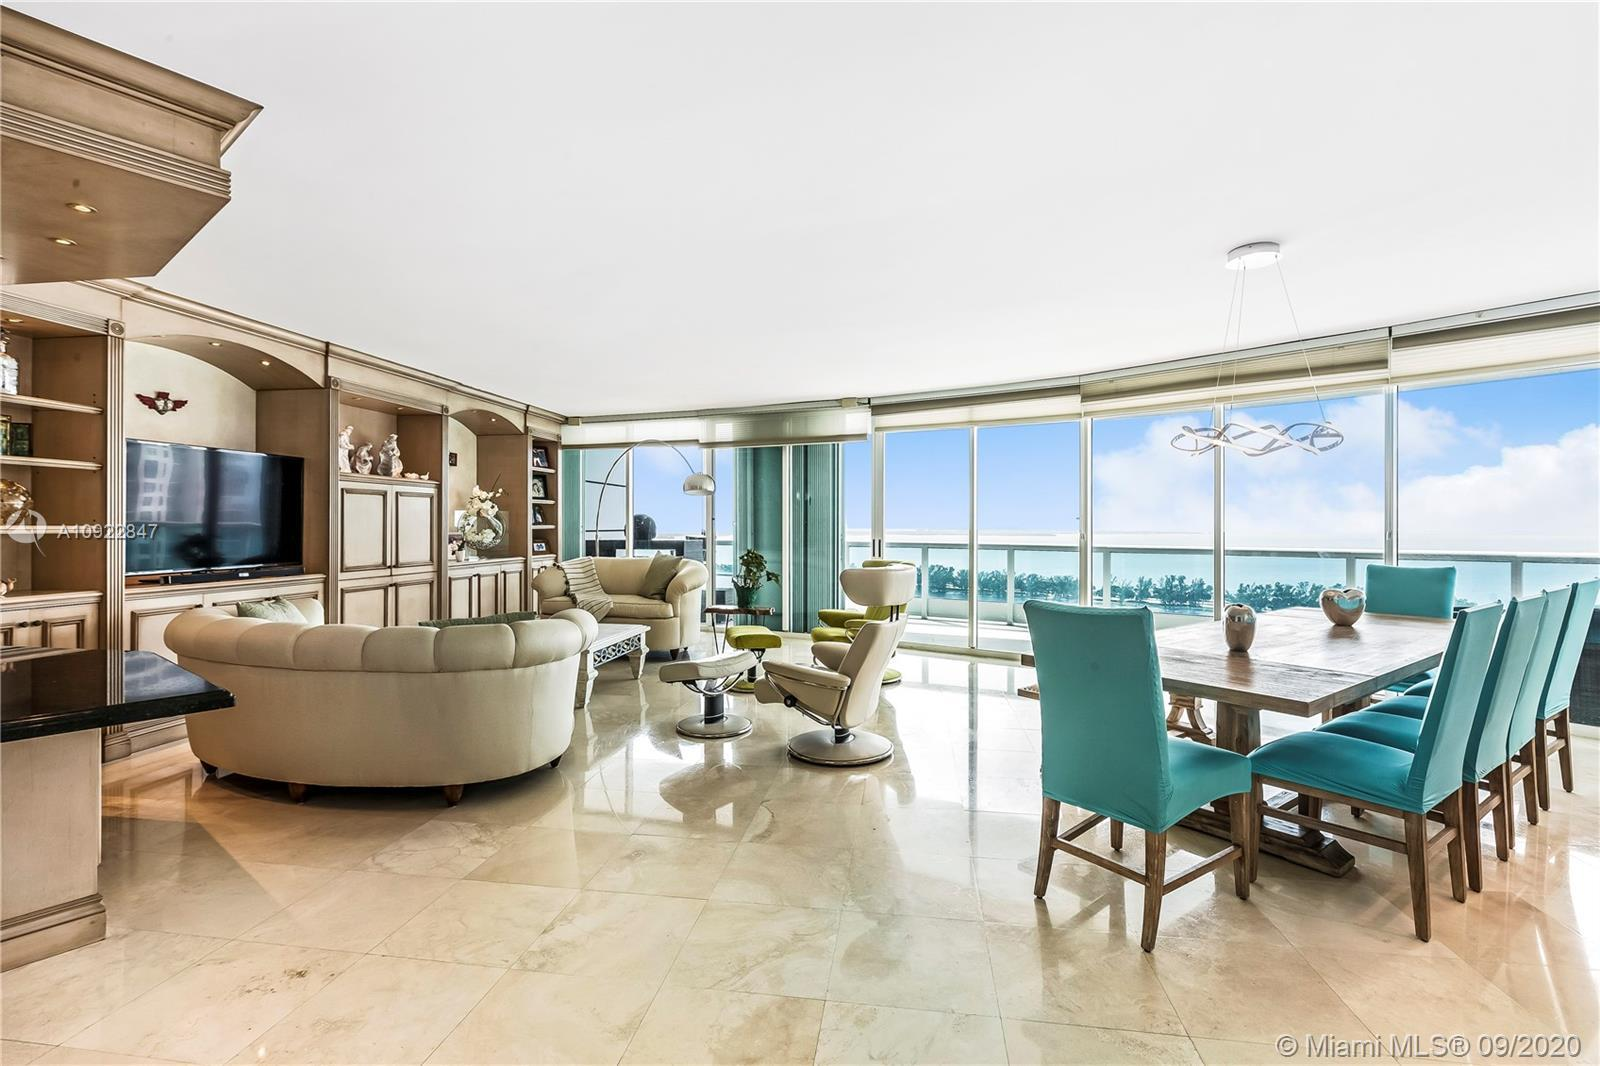 Bristol Tower is a 40-story luxury condominium located on Brickell Avenue overlooking Biscayne Bay.